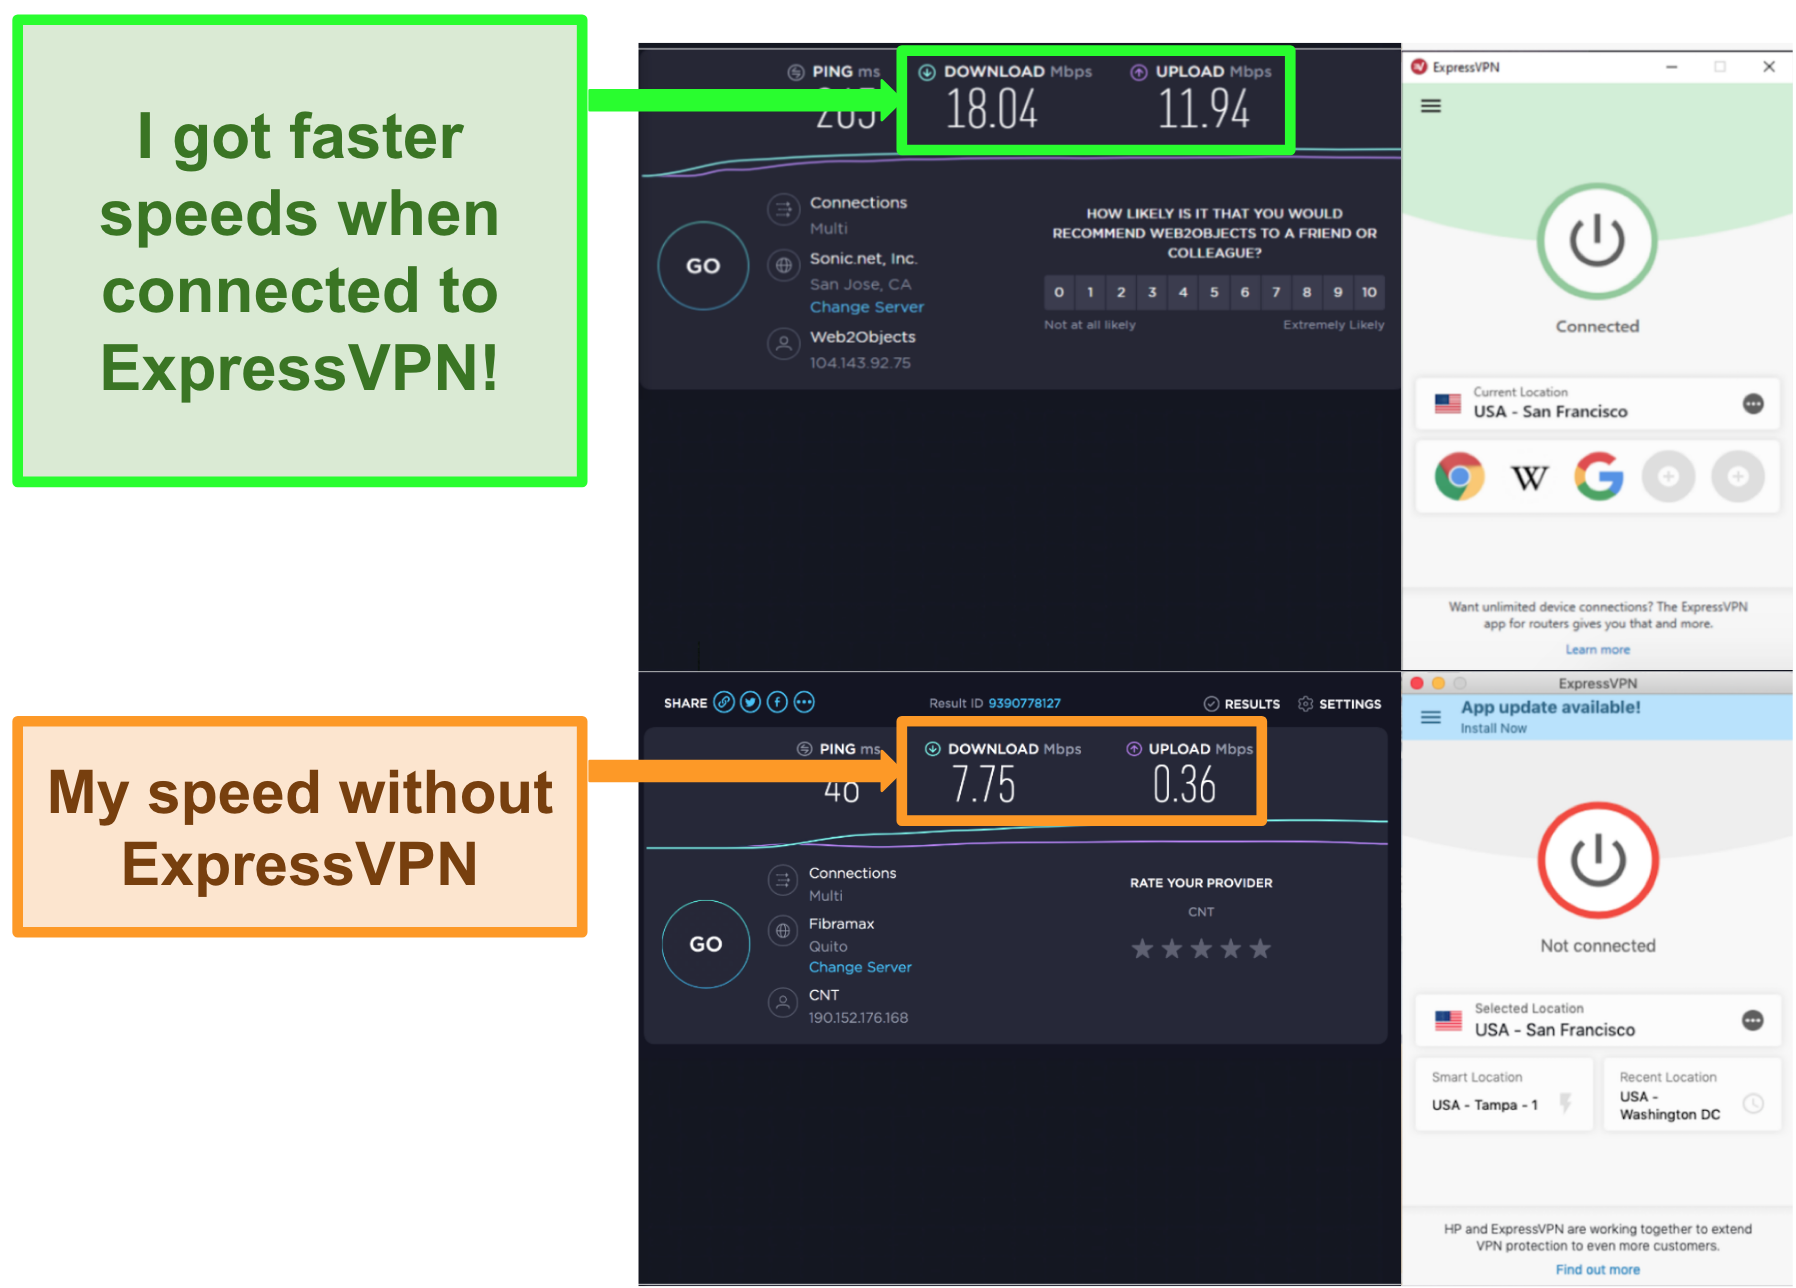 expressvpn improved my speed when connected to a US server